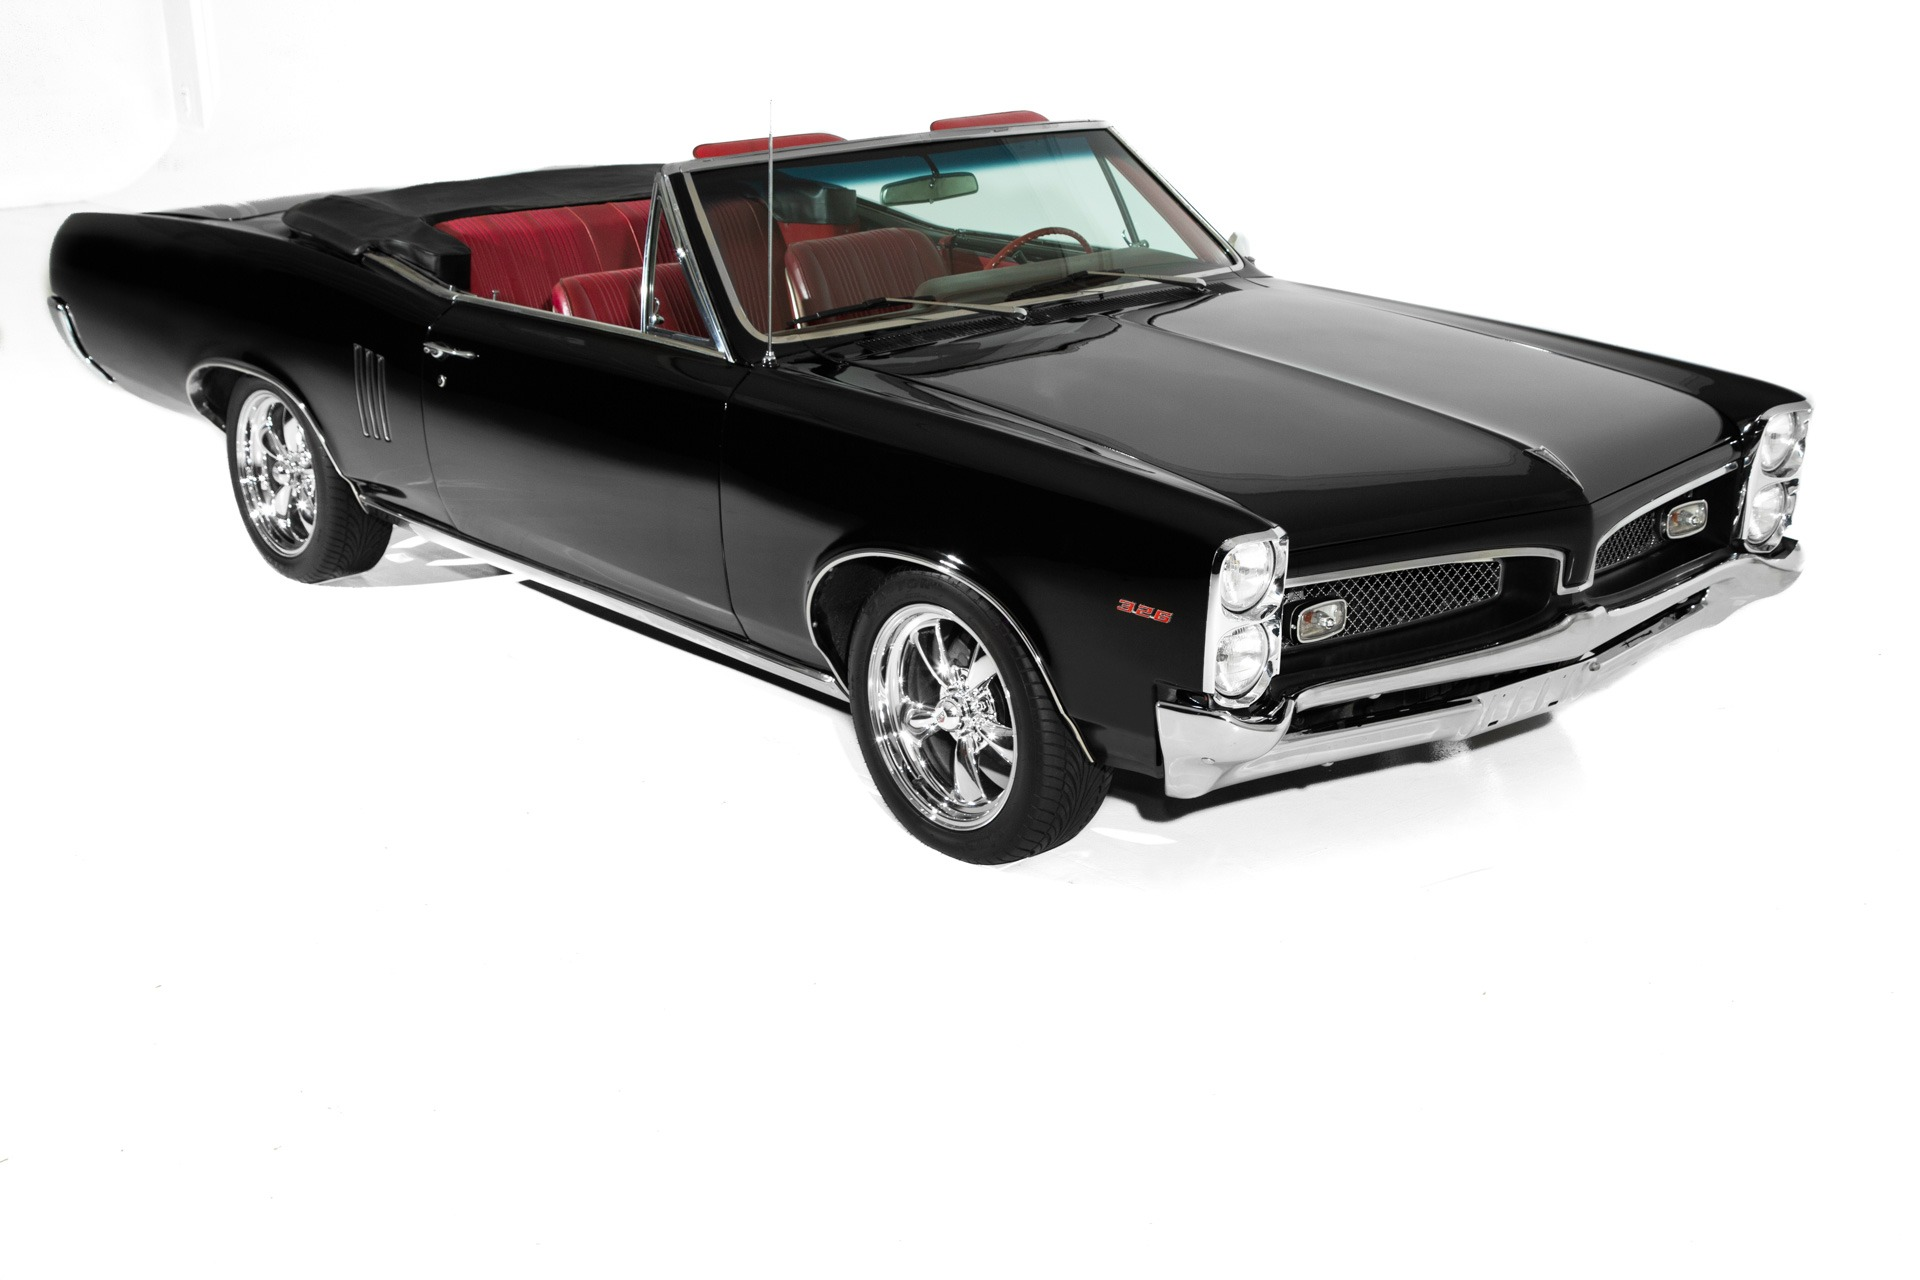 For Sale Used 1967 Pontiac LeMans Black & Red GTO Options | American Dream Machines Des Moines IA 50309